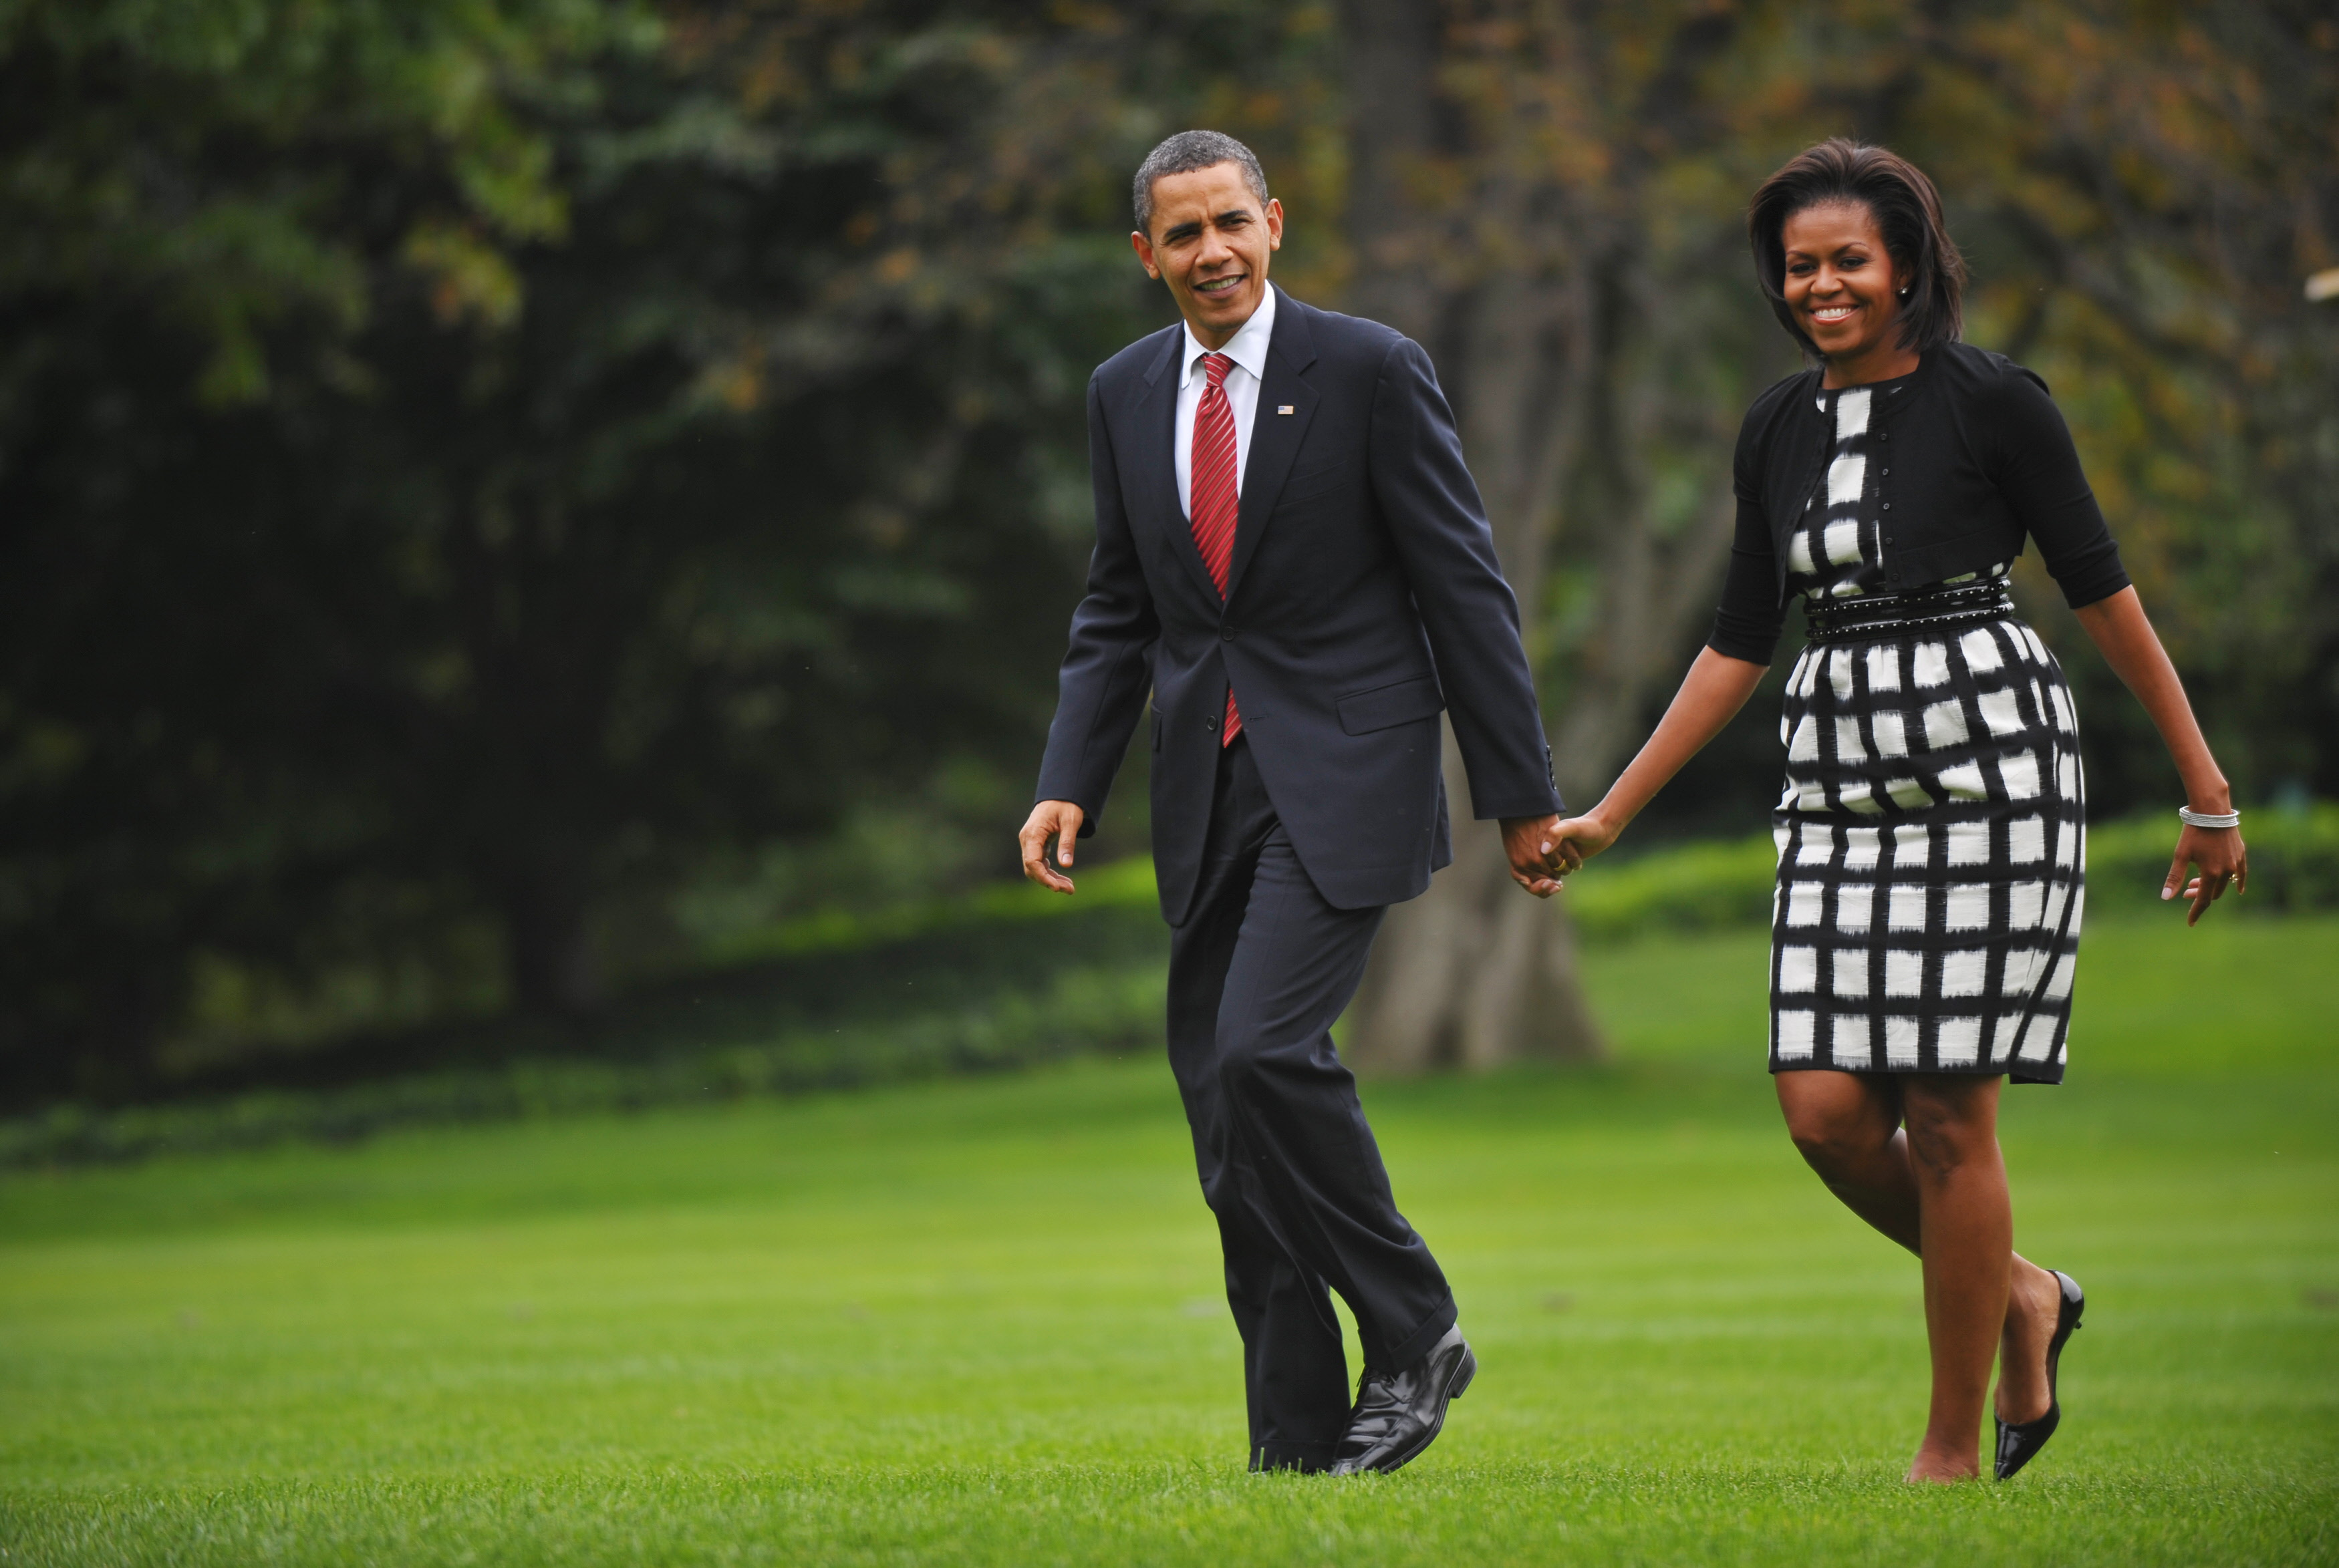 US President Barack Obama and First Lady Michelle Obama make their way from Marine One October 2, 2009 upon return to the White House in Washington, DC. Obama returned to Washington after a brief visit to Copenhagen to lobby for Chicagos bid to host the 2016 Olympics. Chicago lost to Rio de Janeiro.     AFP PHOTO/Mandel NGAN (Photo credit should read MANDEL NGAN/AFP/Getty Images)